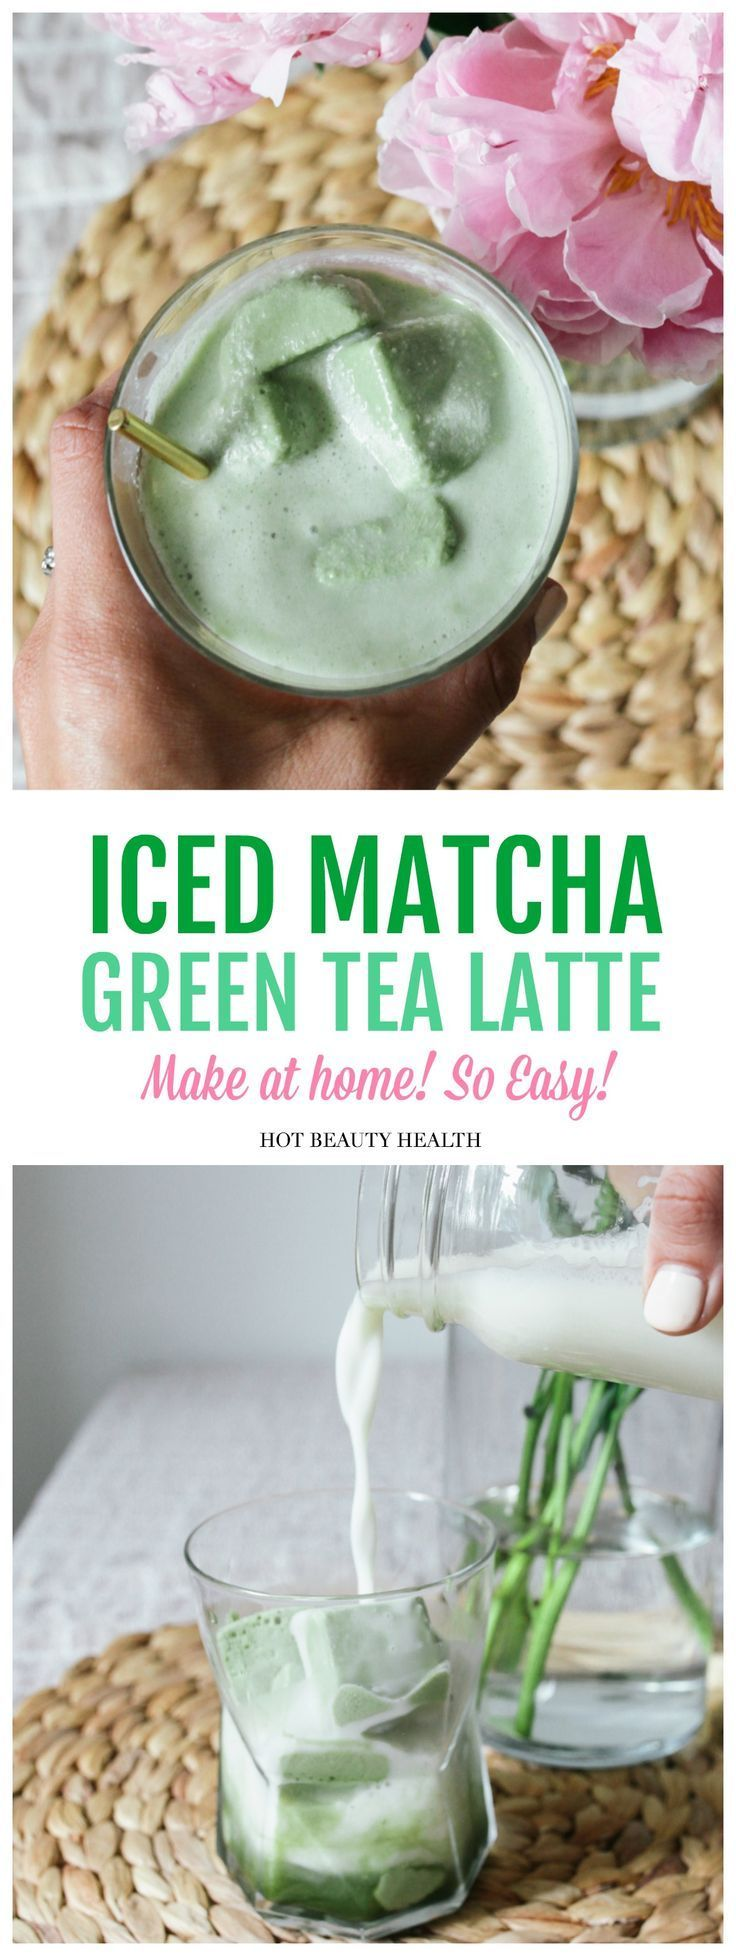 Iced Matcha Green Tea Latte Recipe